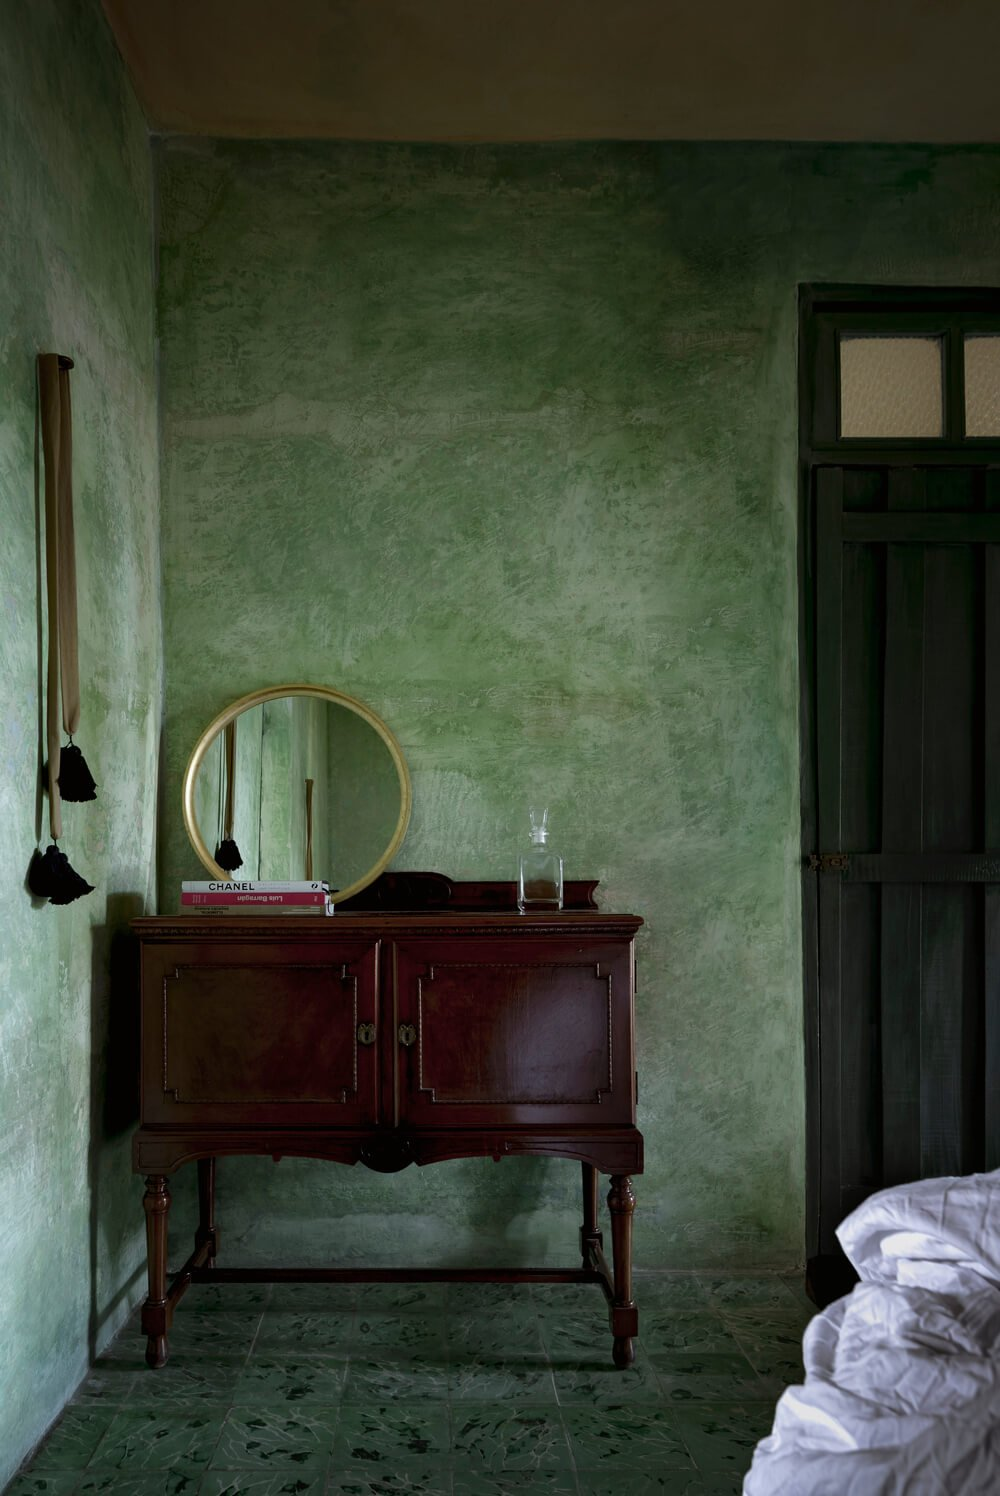 Across from the bed of the bedroom is a dark door with a dark wooden waist-high cabinet fitted with a large round mirror.